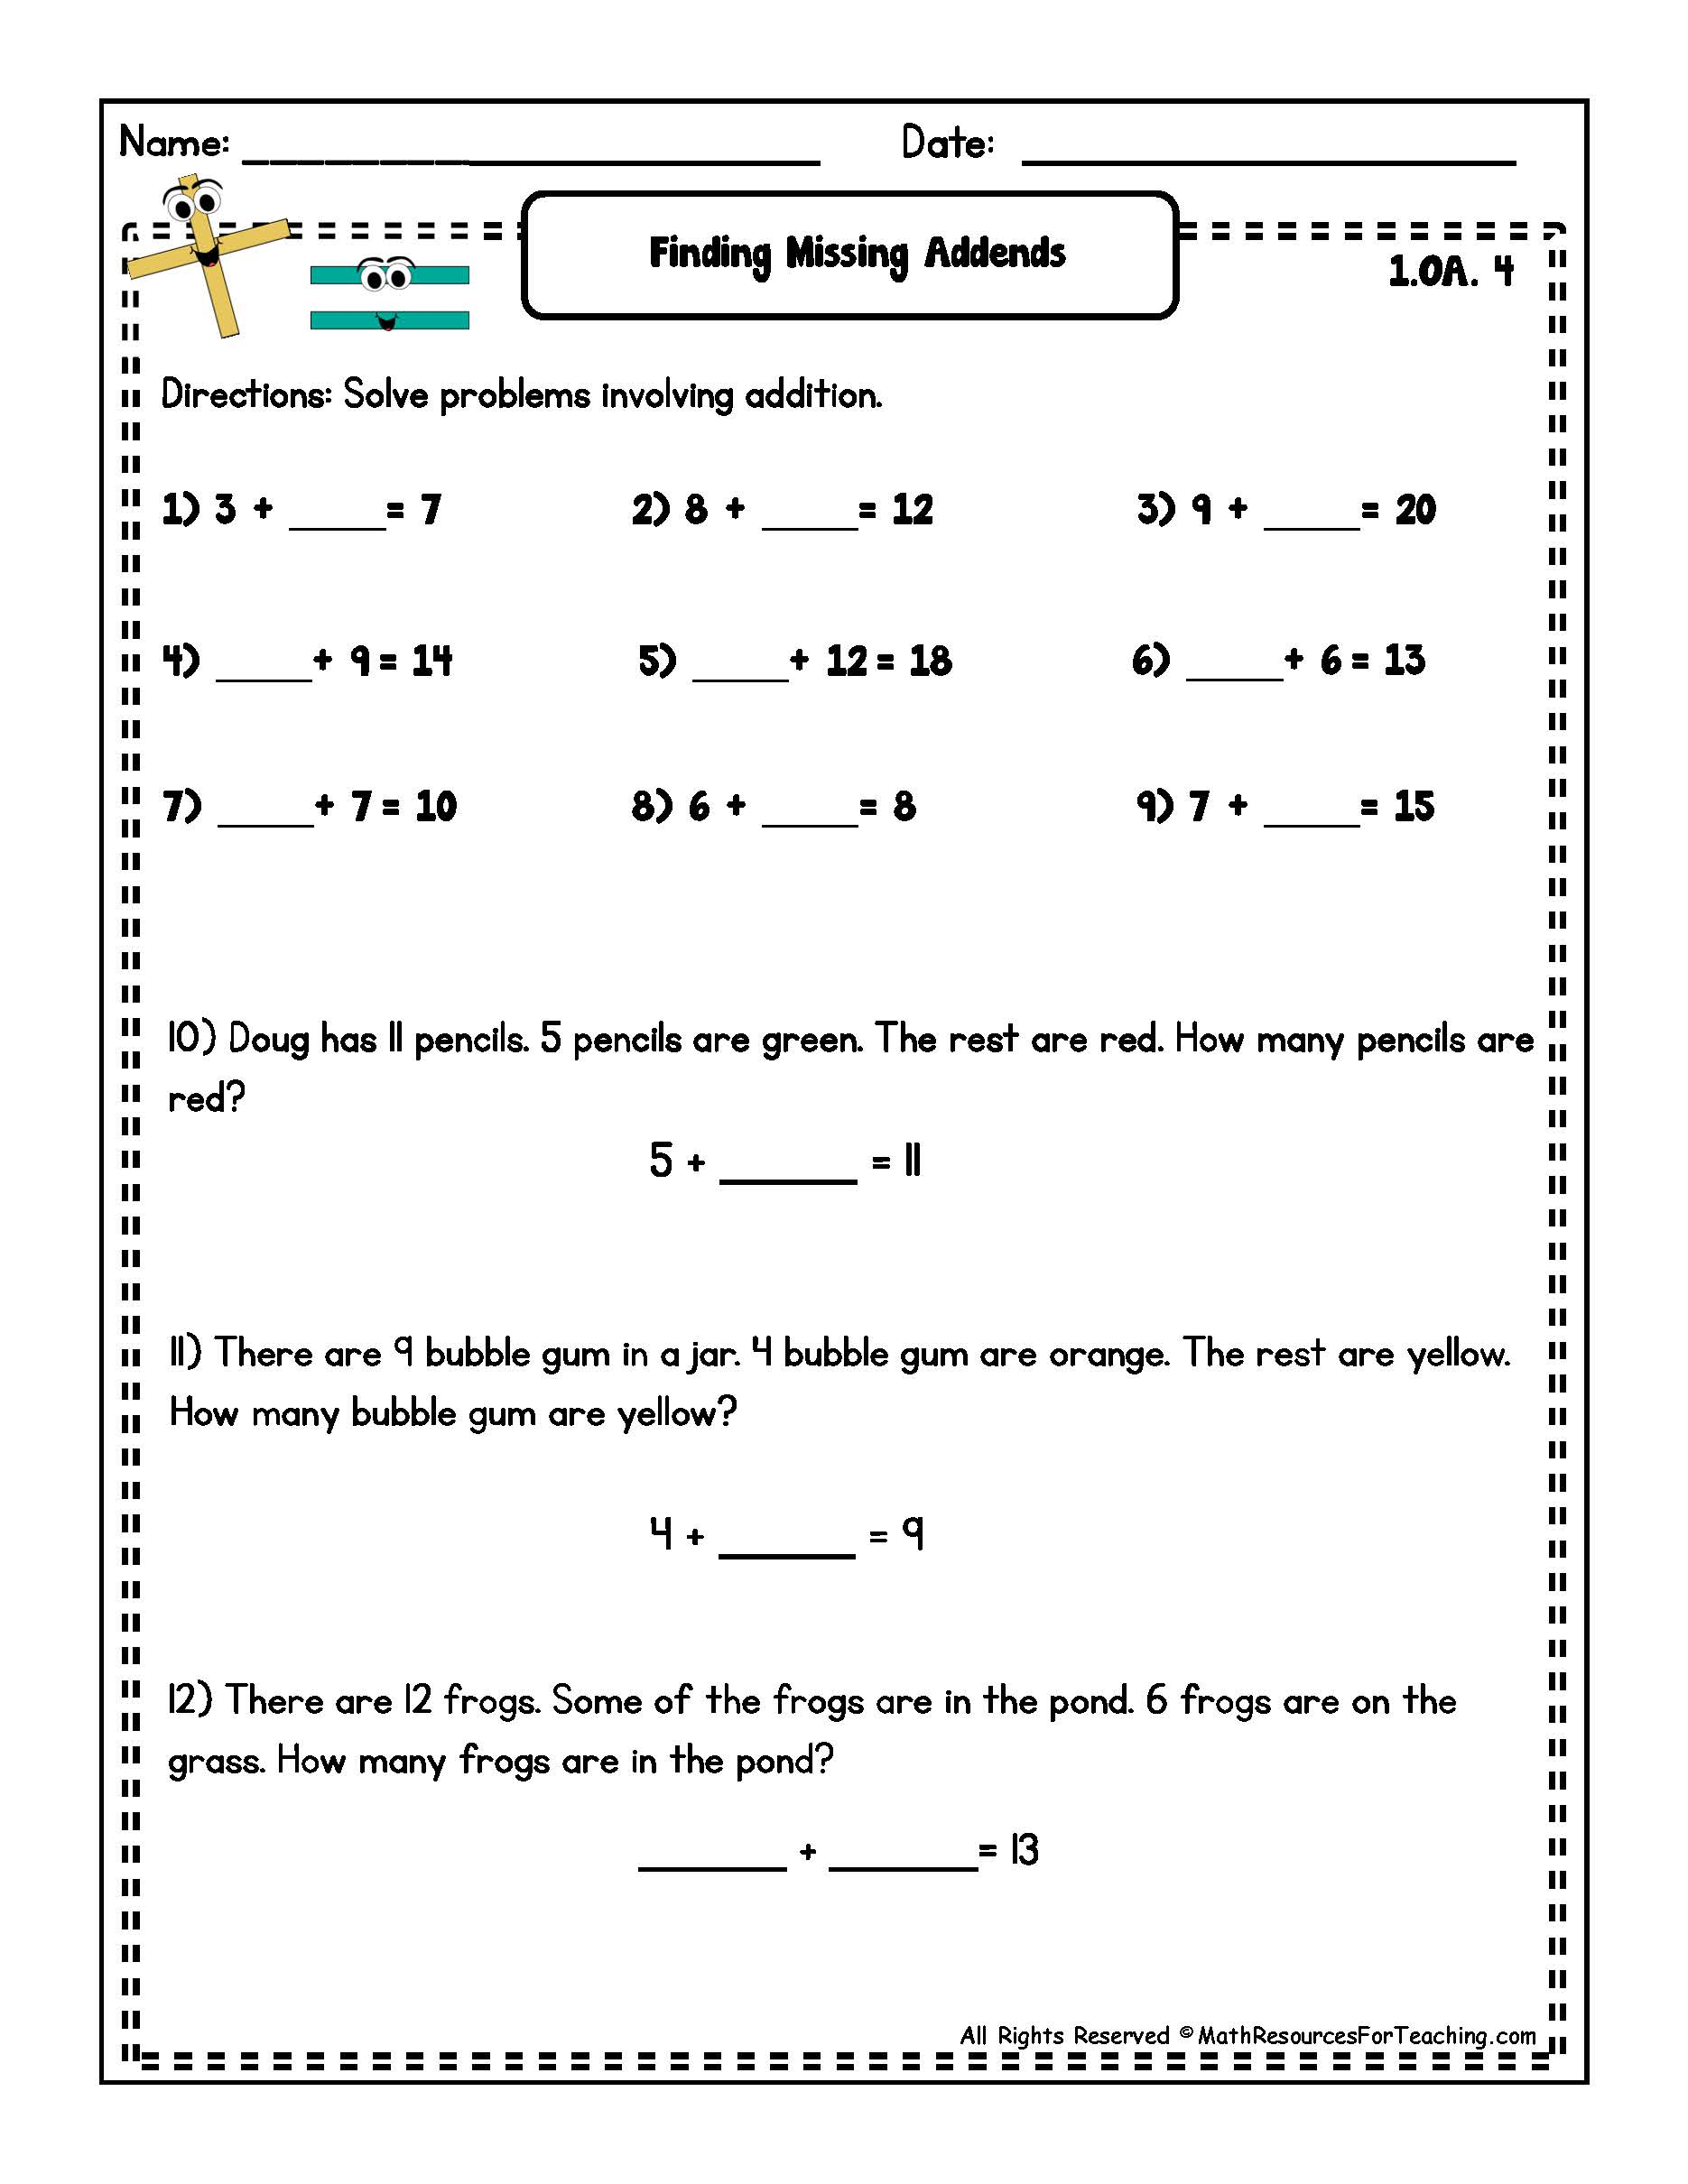 hight resolution of Missing Addend Worksheets   Printable Worksheets and Activities for  Teachers